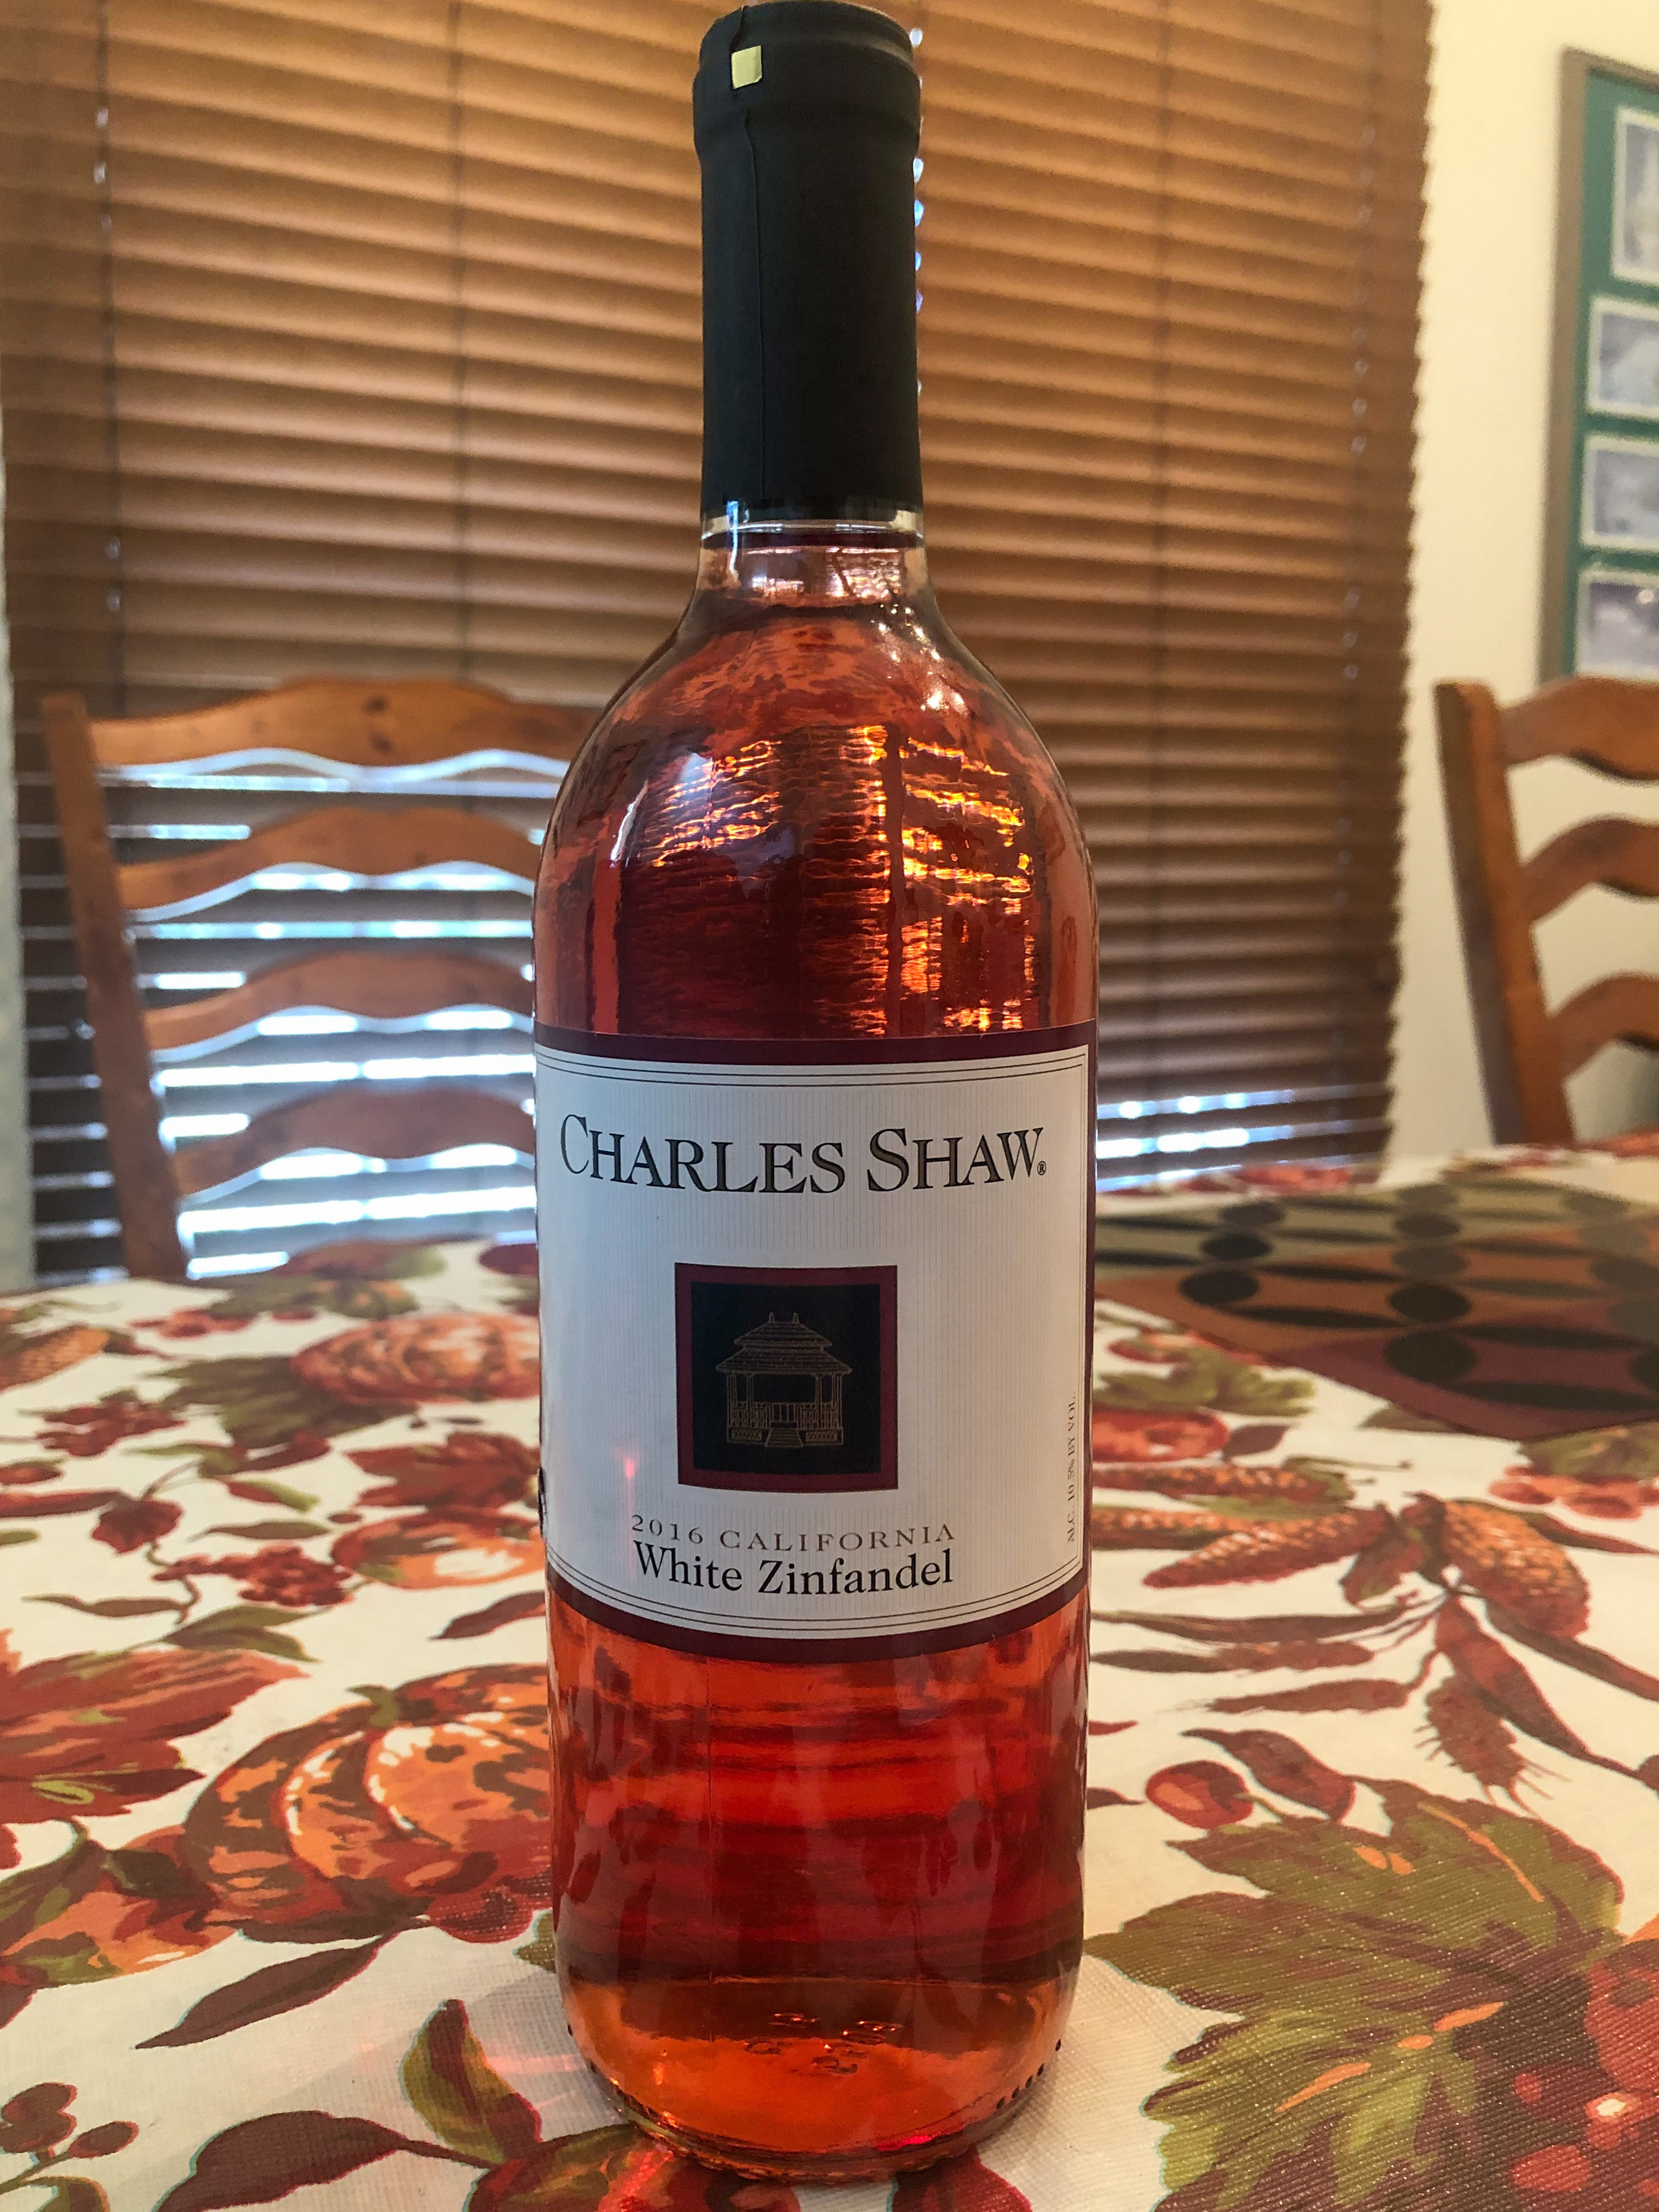 A bottle of Charles Shaw white zinfandel on a table